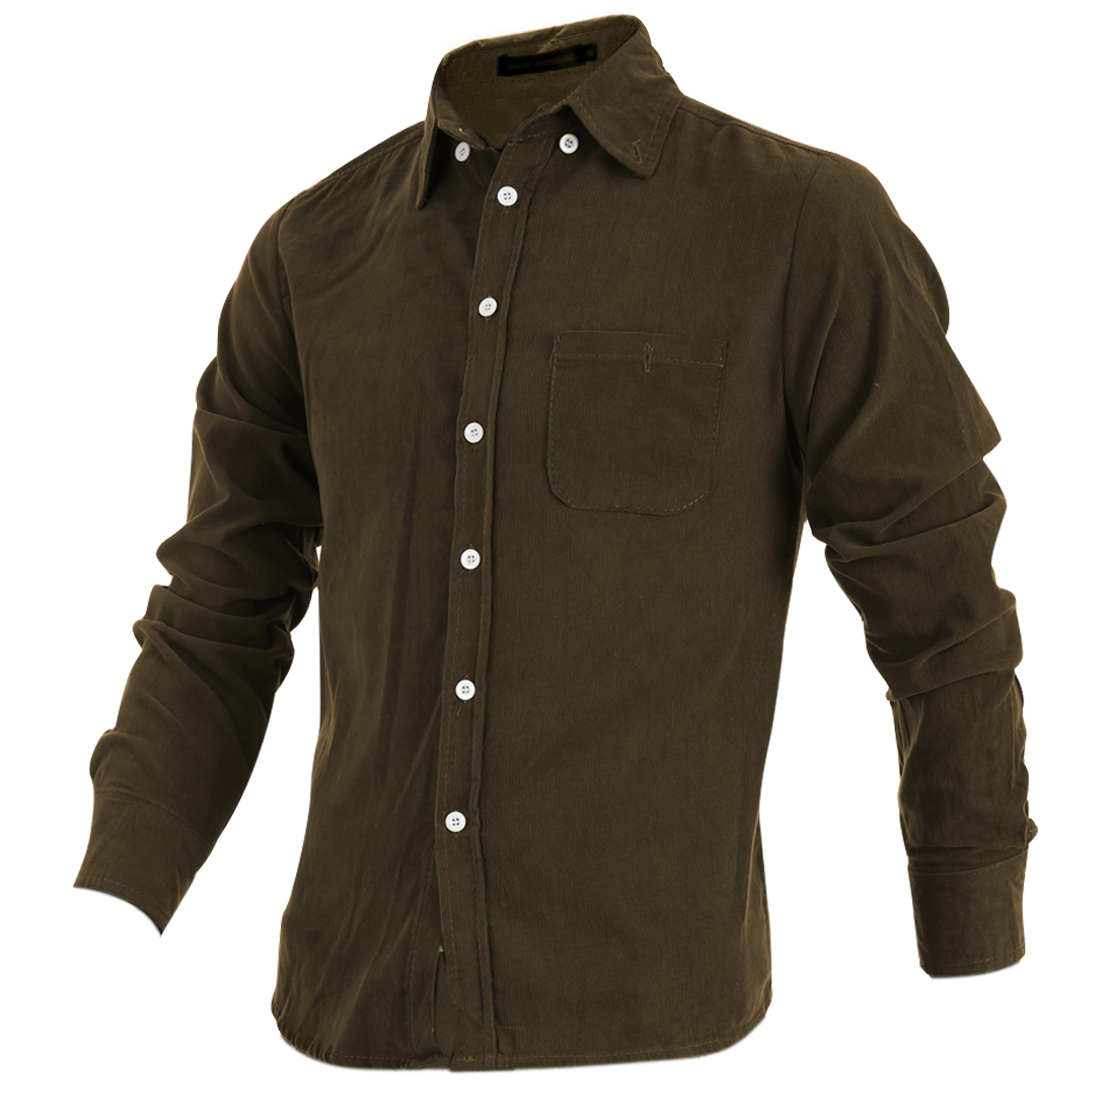 New Style Pure Olive Green Long Sleeve Button Down Corduroy Shirt for Man M